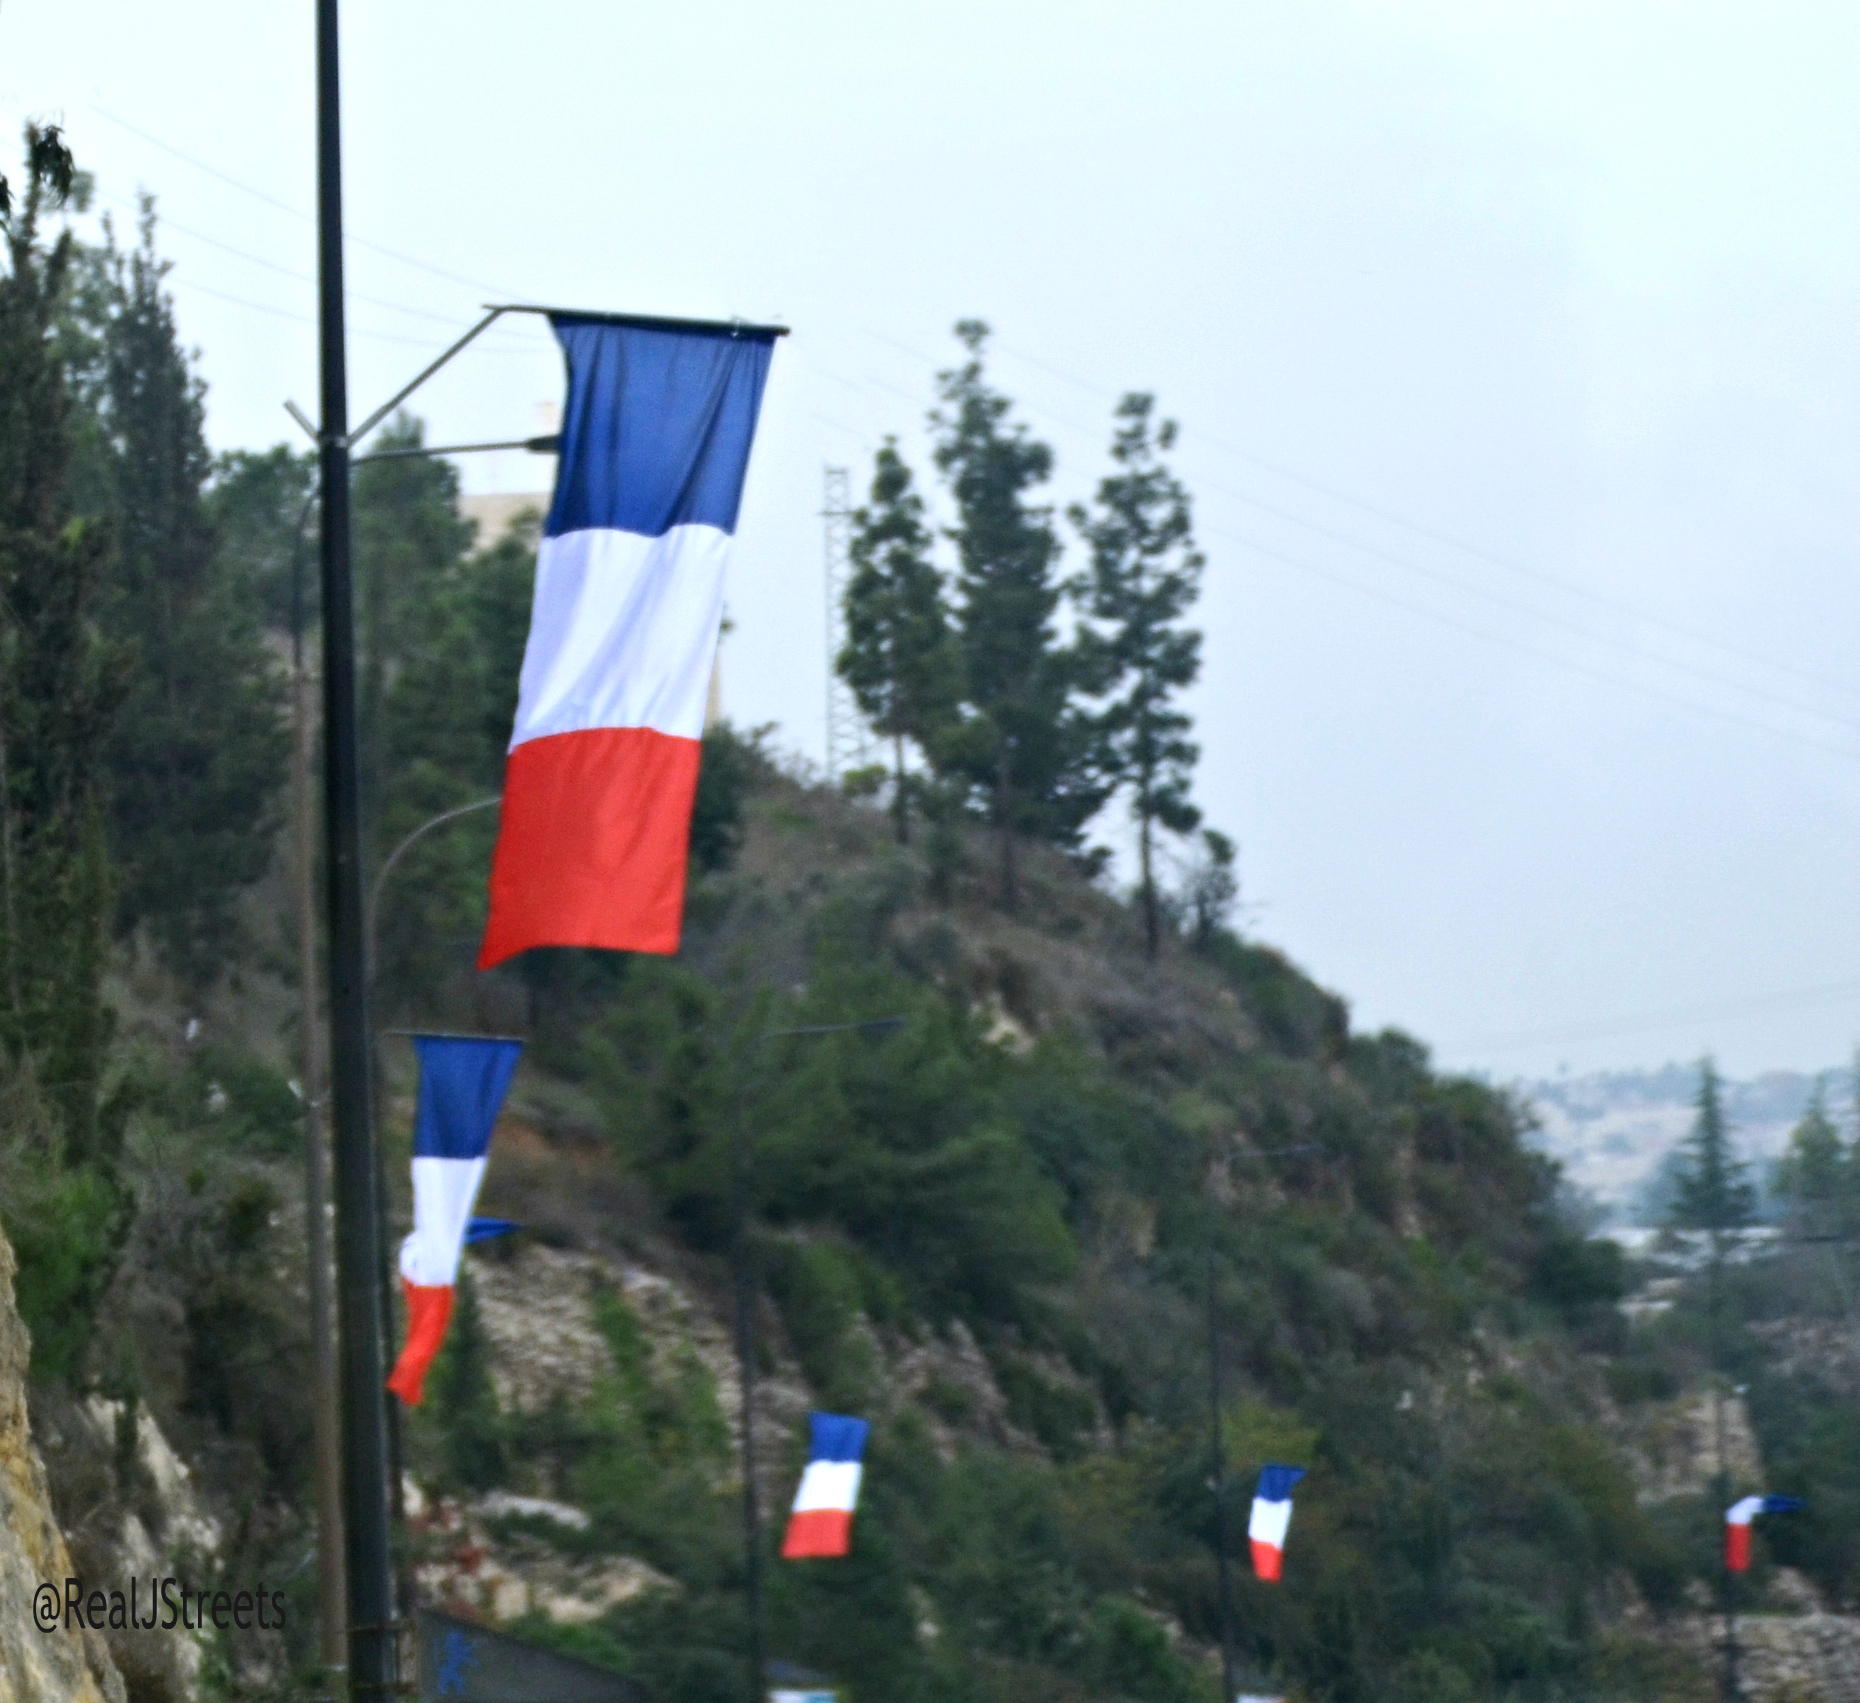 French flags in Jerusalem